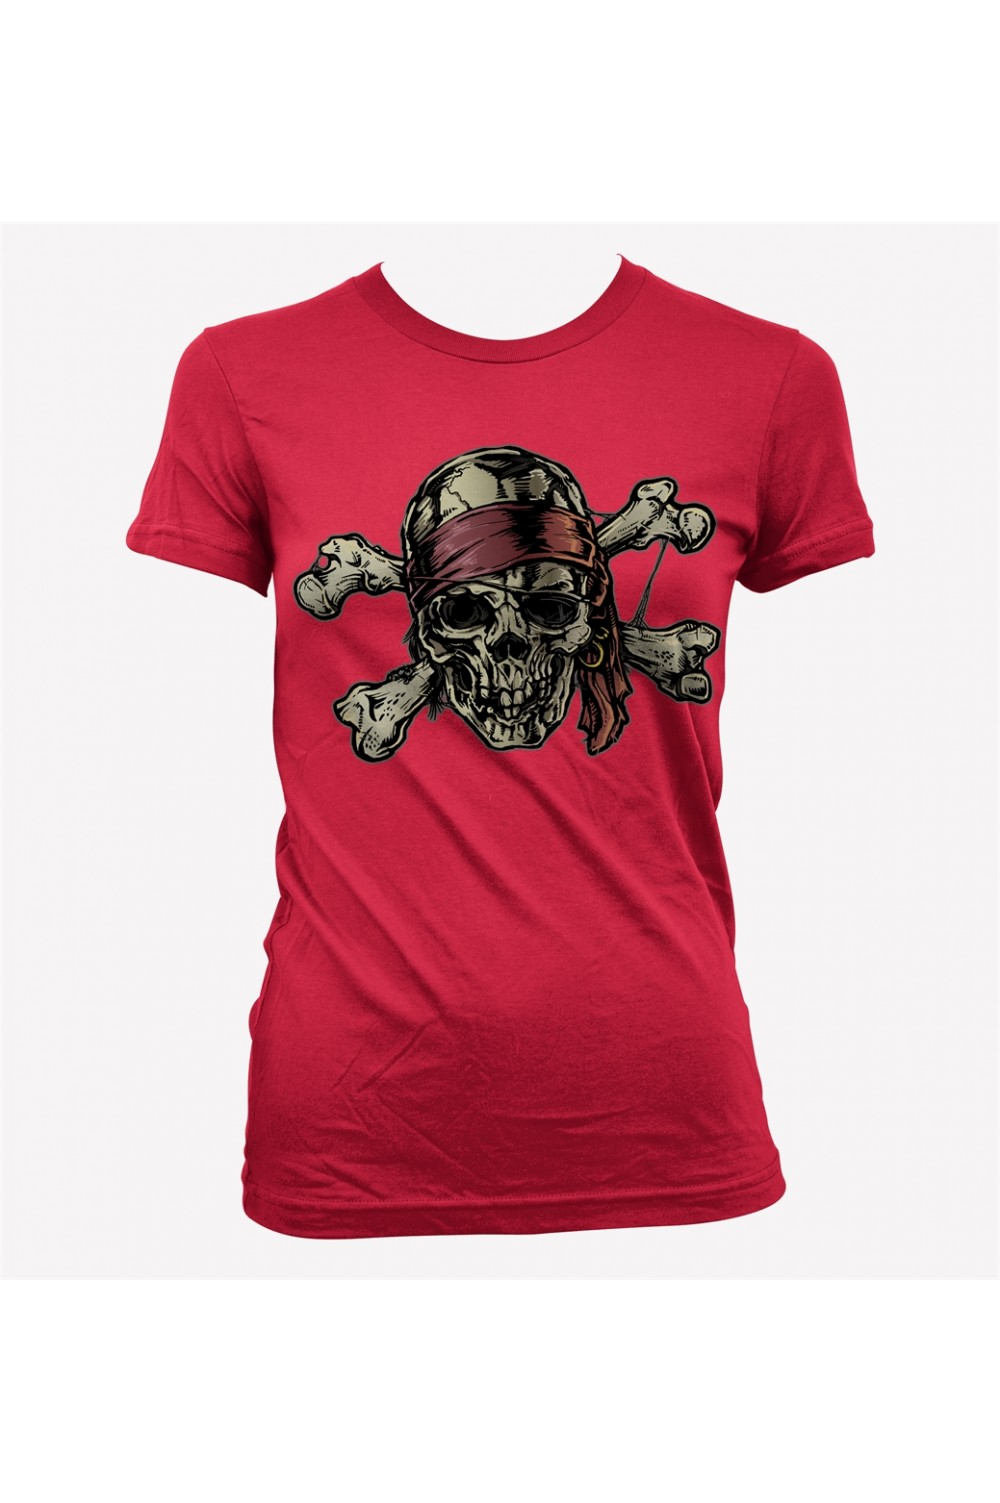 Skull Pirate Lady Printed T shirt 4009